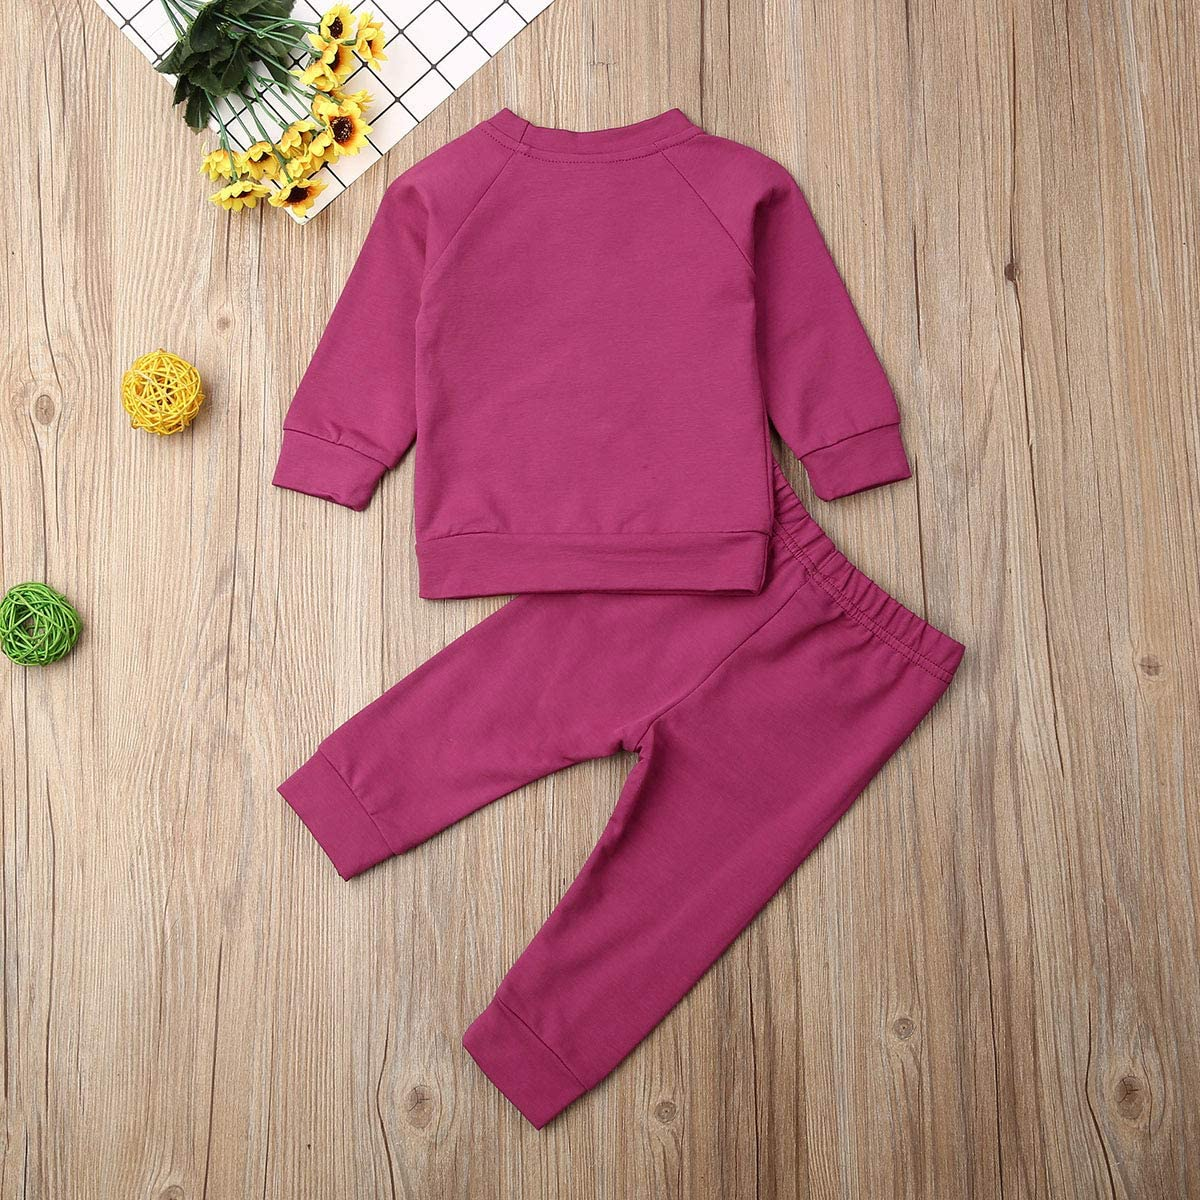 Toddler Baby Boy Girls Solid Color Clothes Kids Ruffle Long Sleeve T-Shirt Tops+Elastic Long Pants Leggings Outfit Set